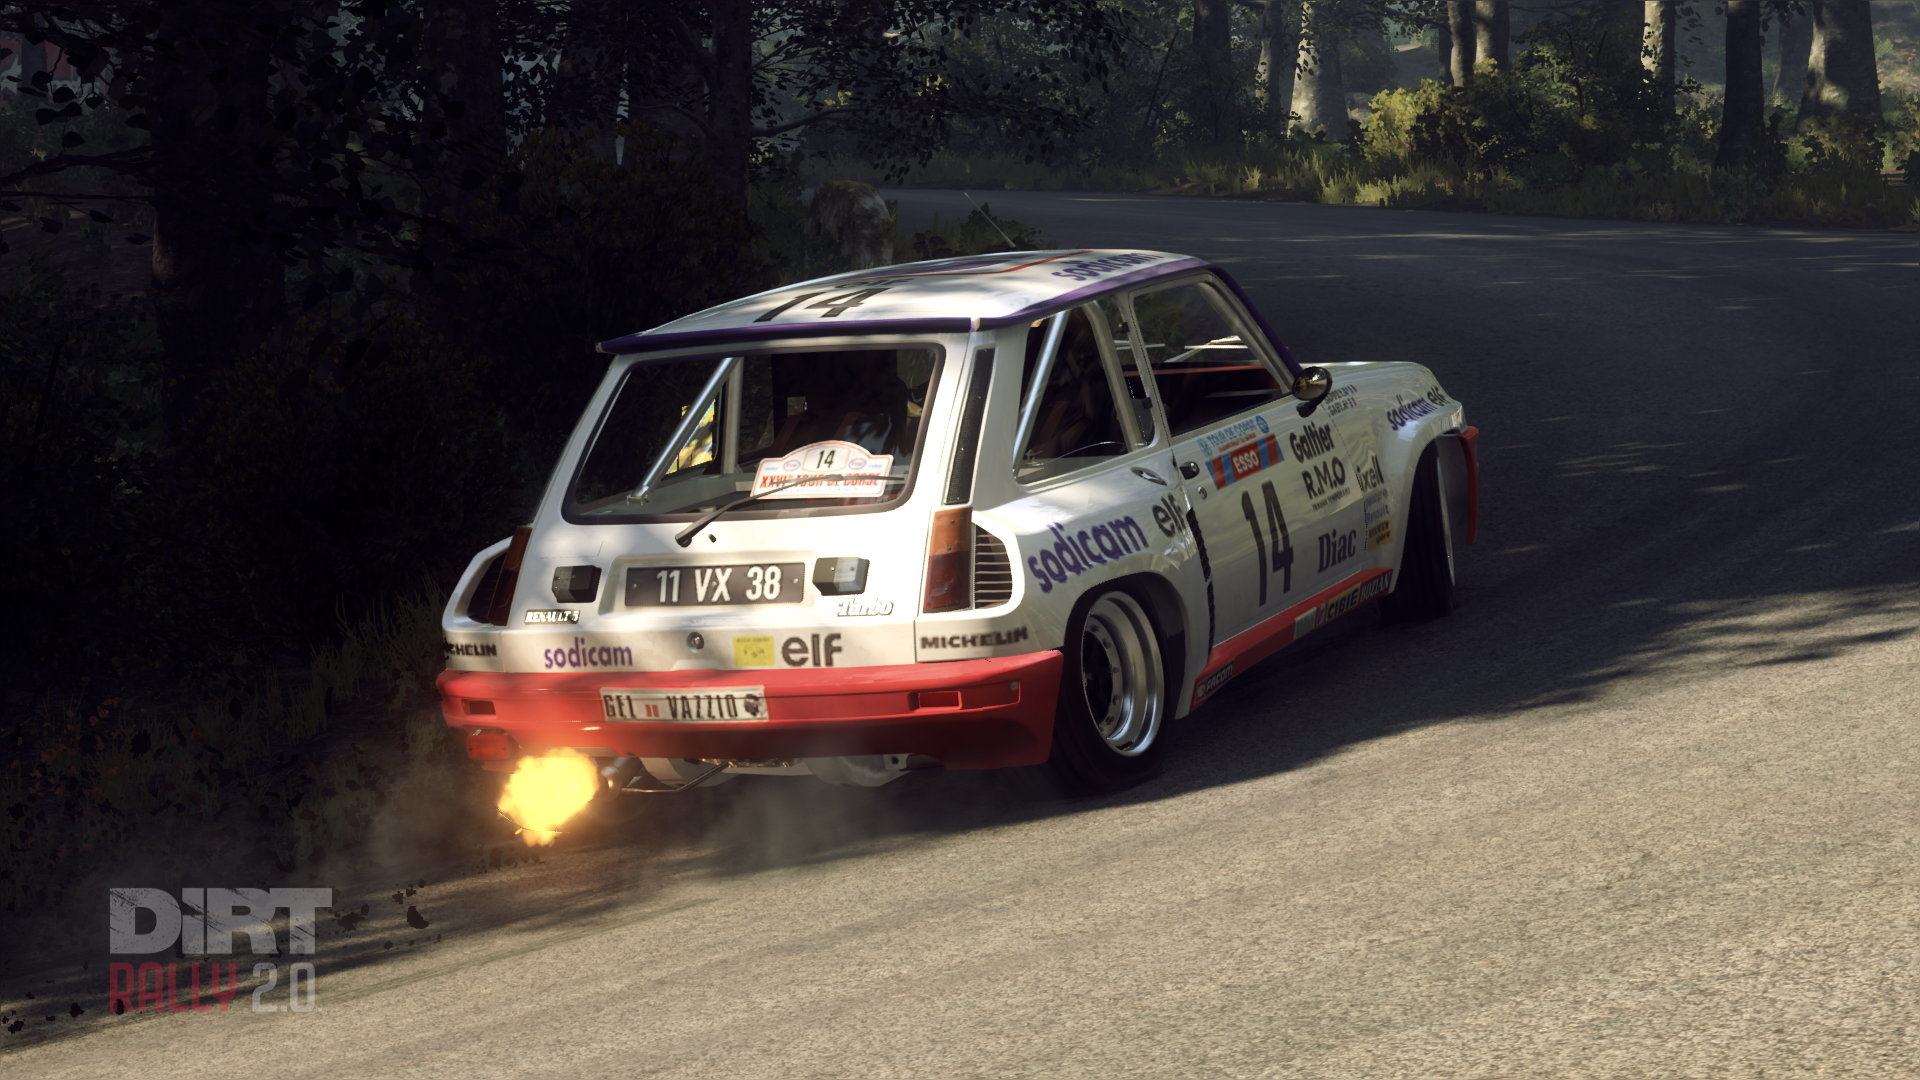 1588013067-dirtrally2-27-04-2020-17-57-3